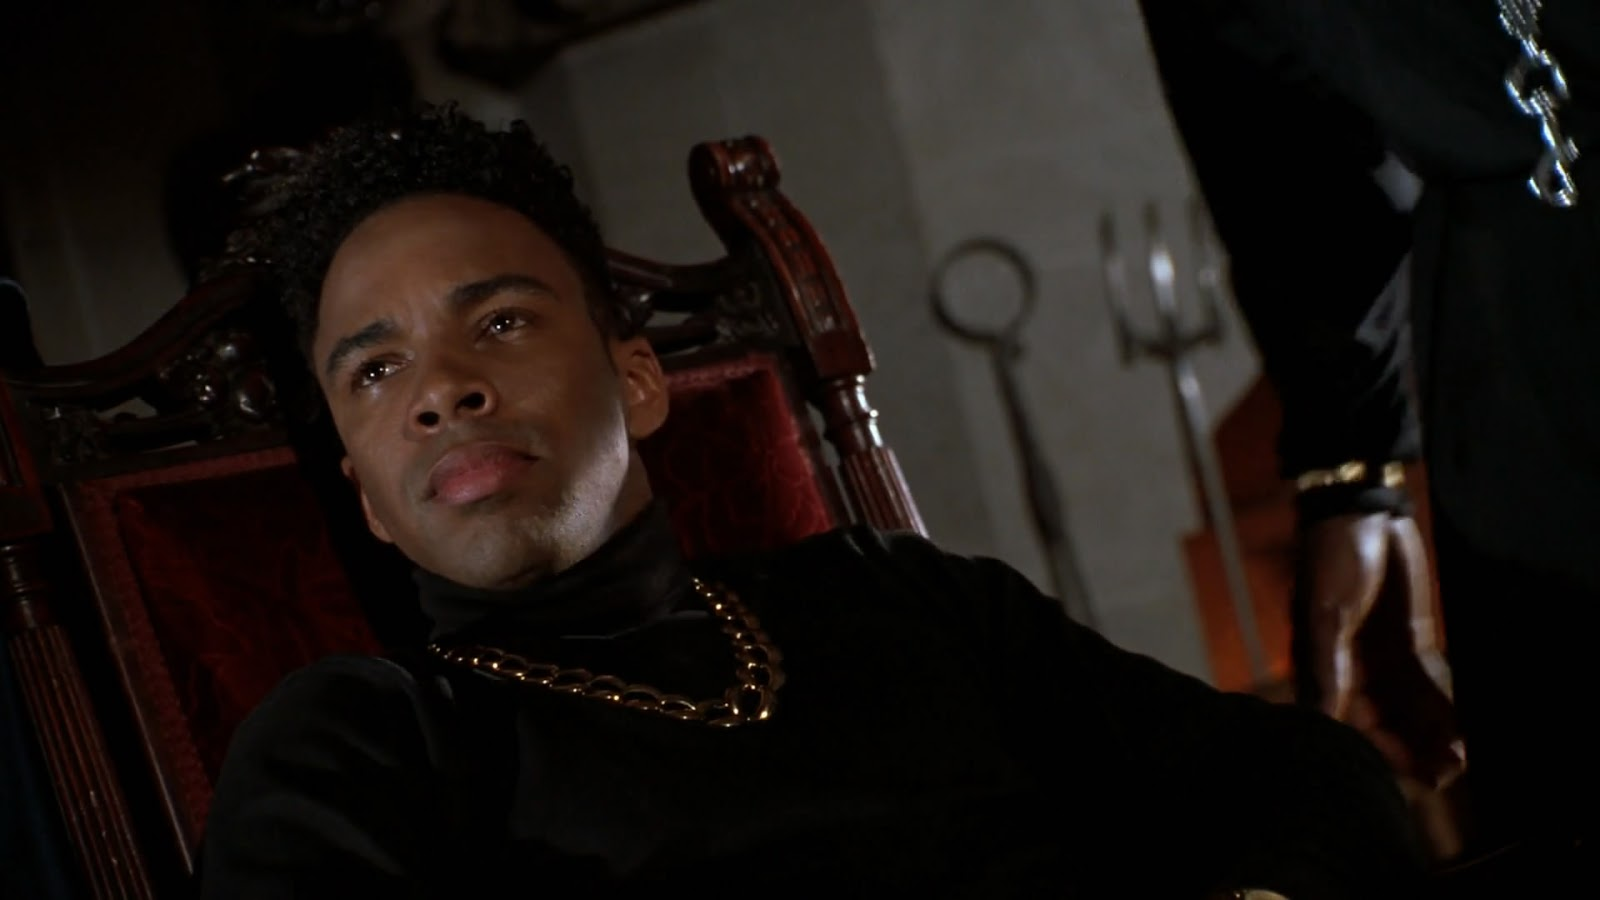 DAR Classic Films: New Jack City - DefineARevolution.com